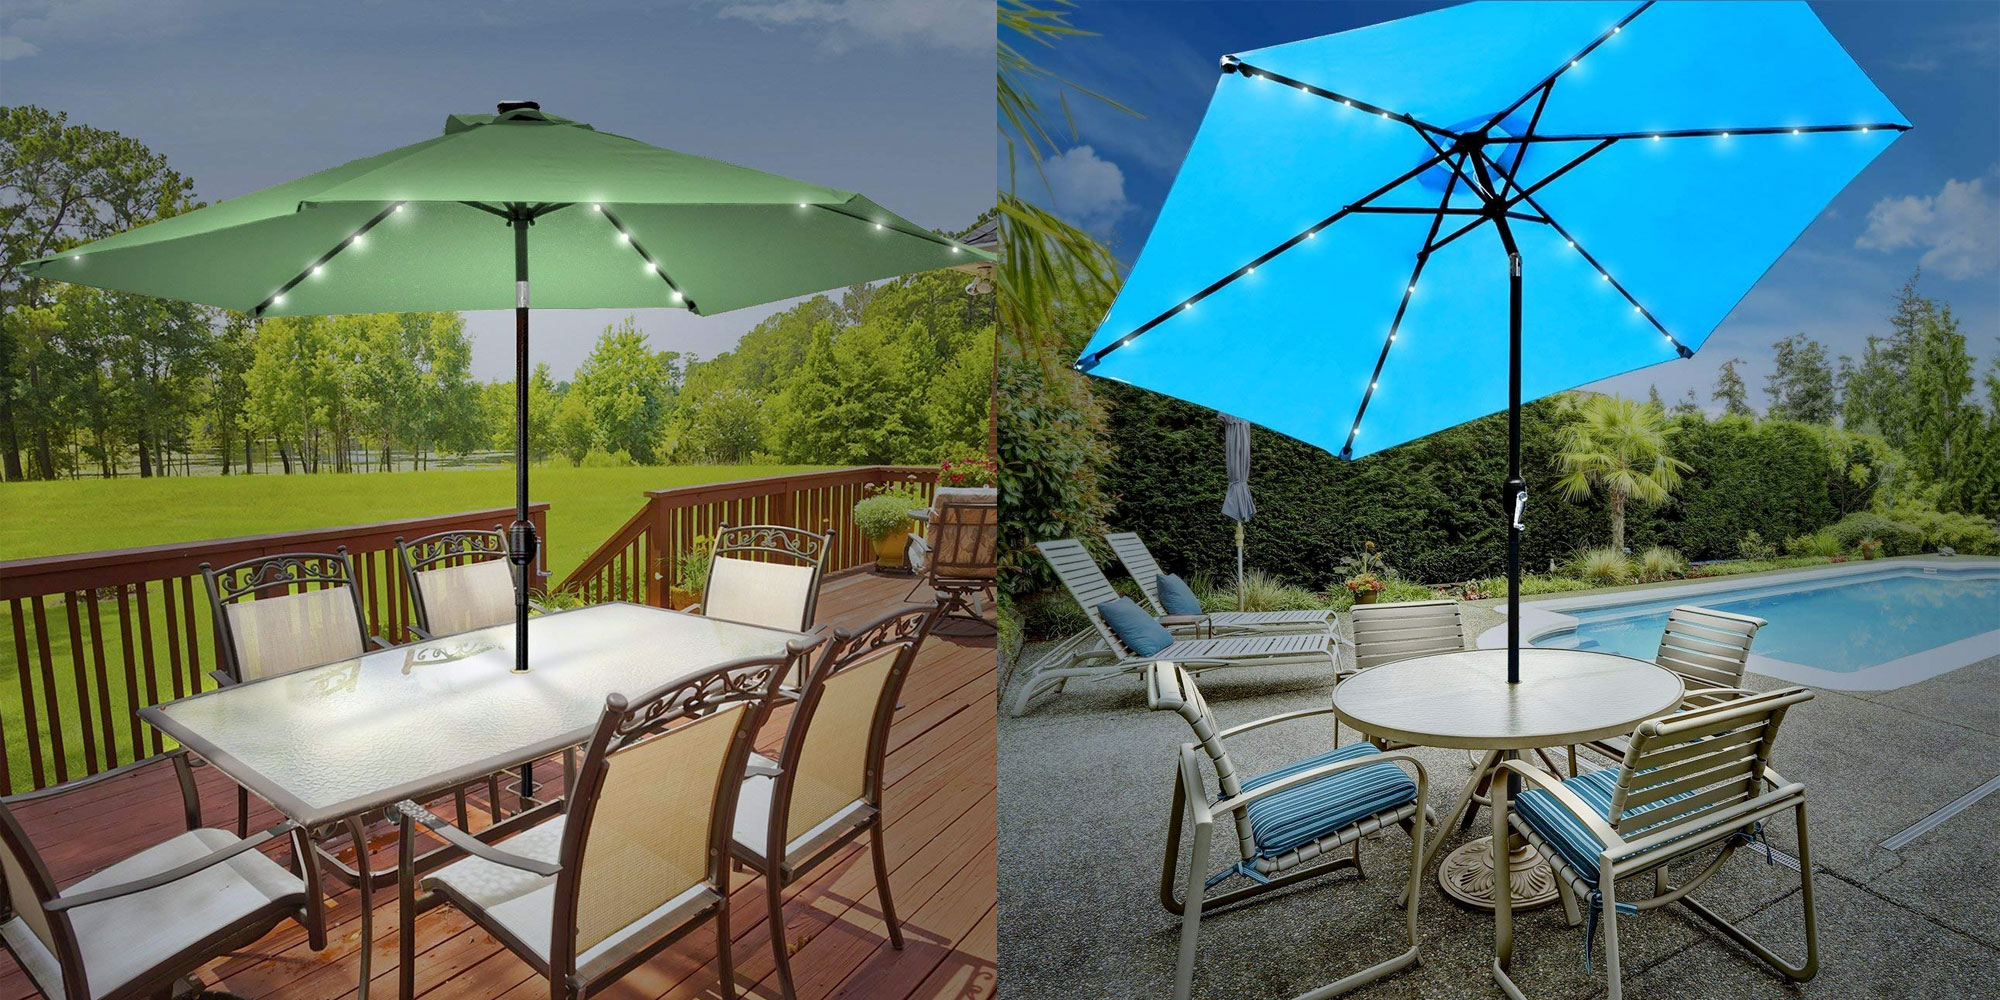 Illuminate Your Patio W/ An Umbrella That Has Built In Solar Powered LED  Lights: $60 (Reg. $75)